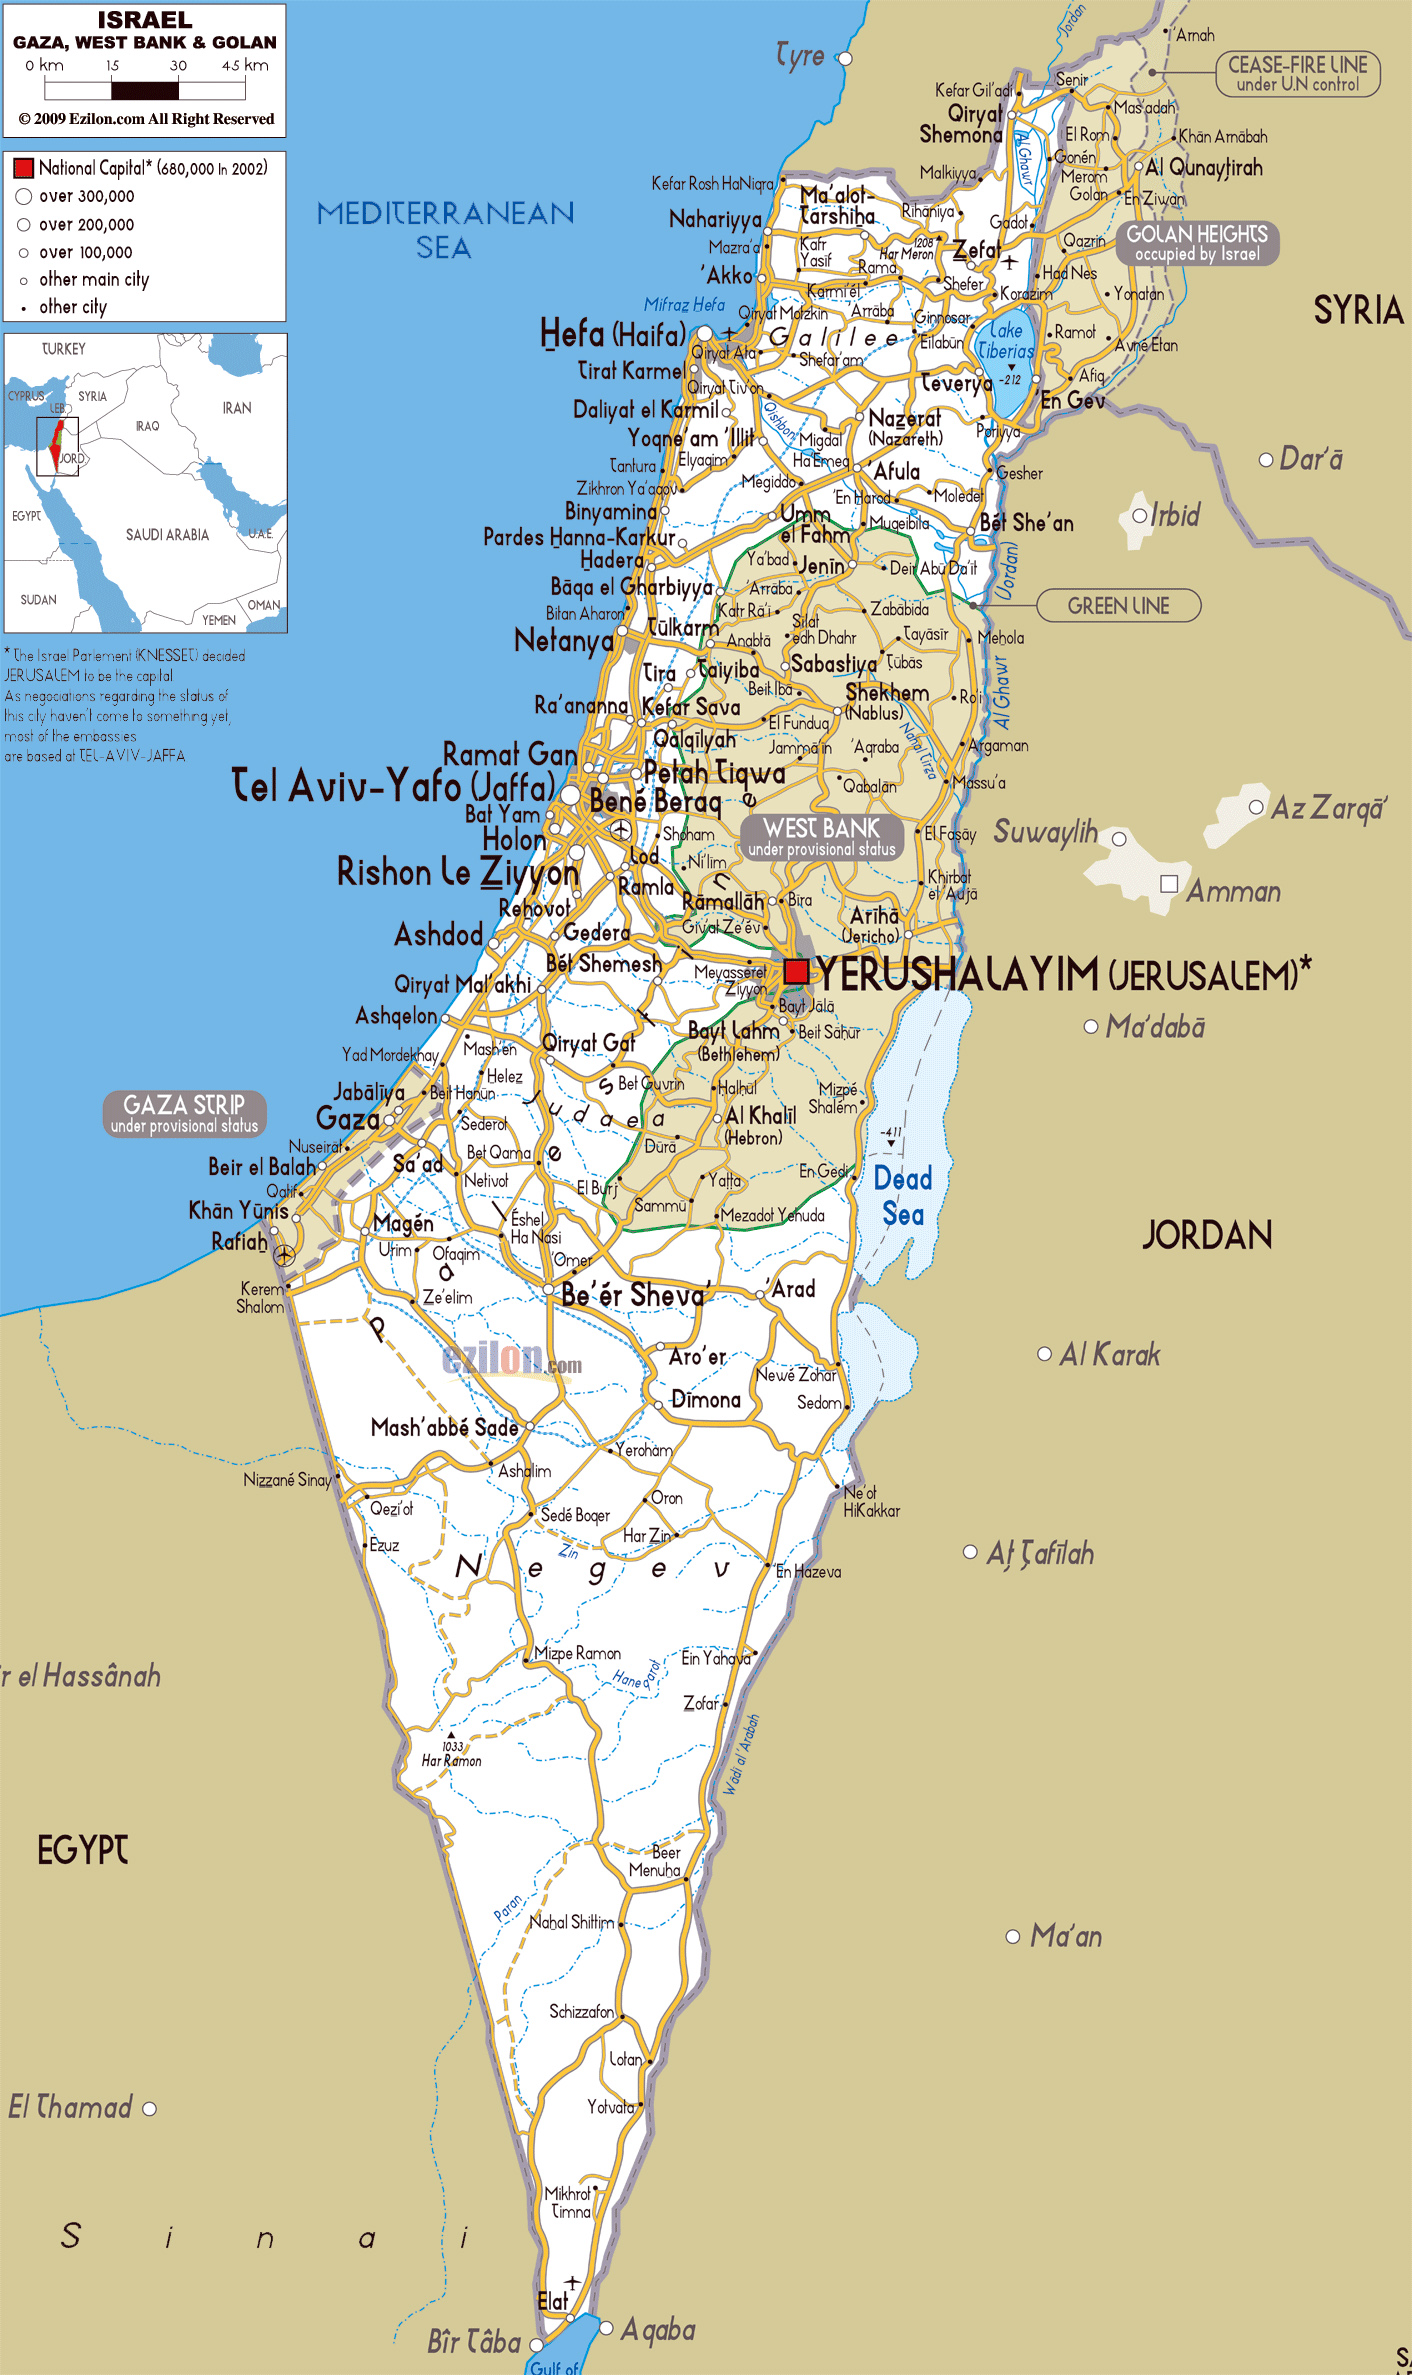 Detailed Roads Map Of Israel With All Cities And Airports - Map of israel